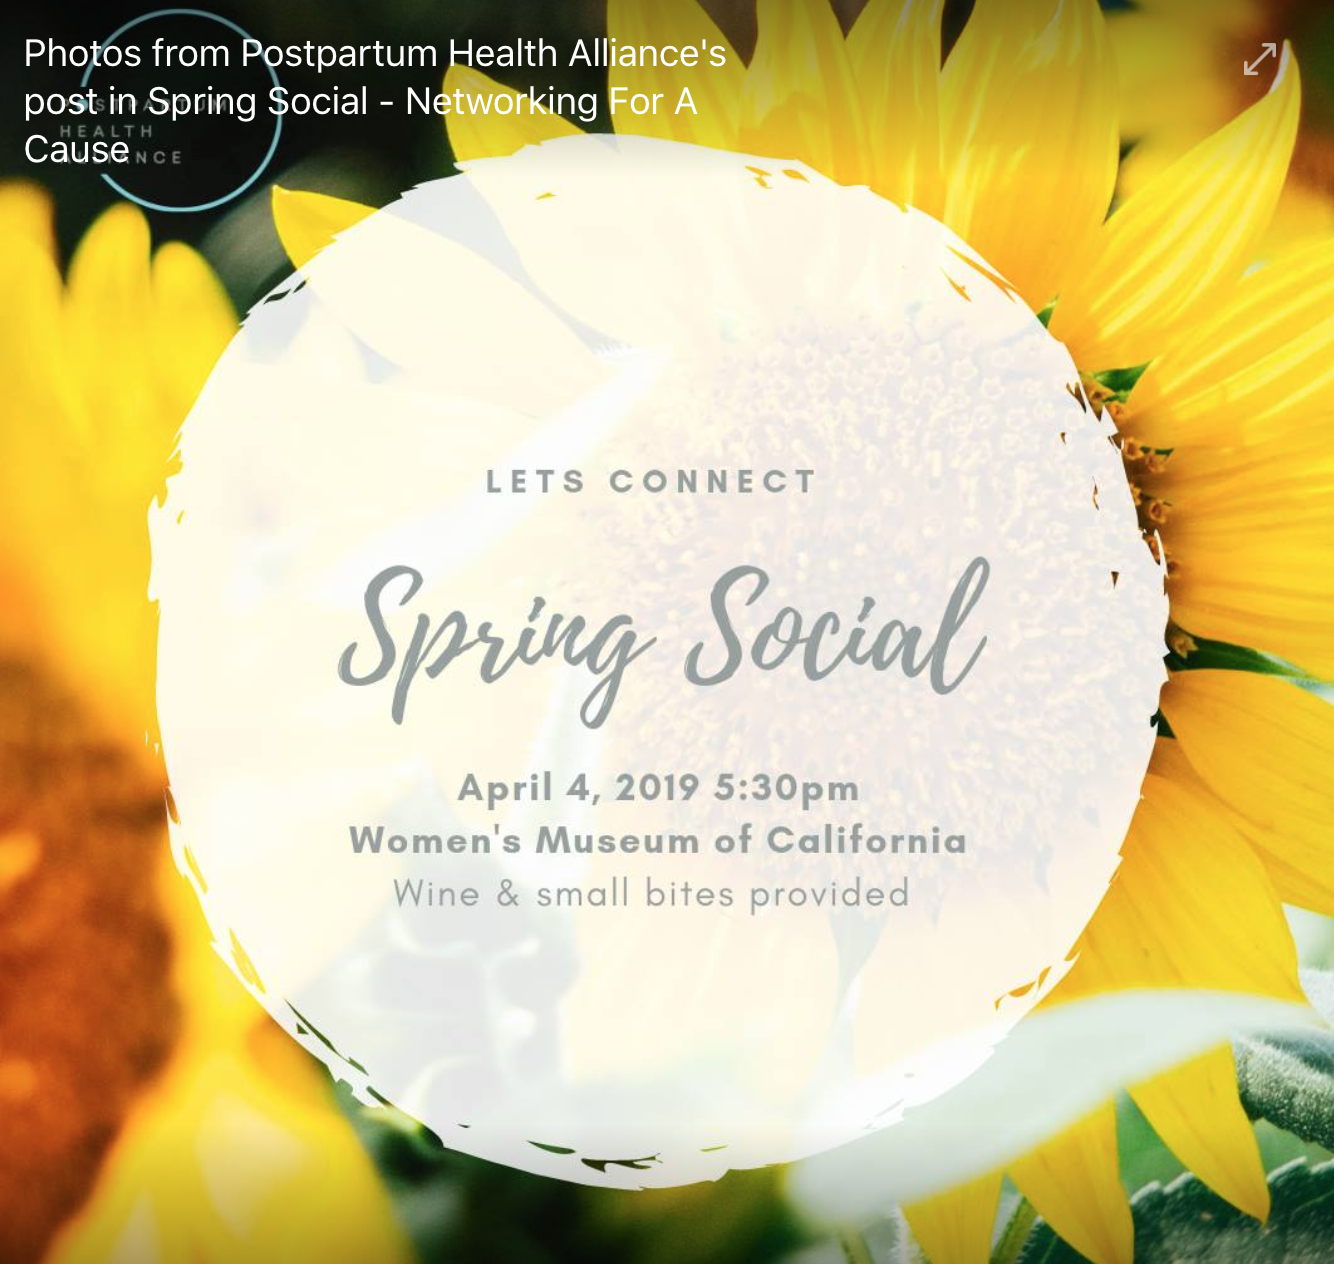 Super cool Spring Social from PHA! Will you be there too? Pictures downloaded from PHA's facebook page.